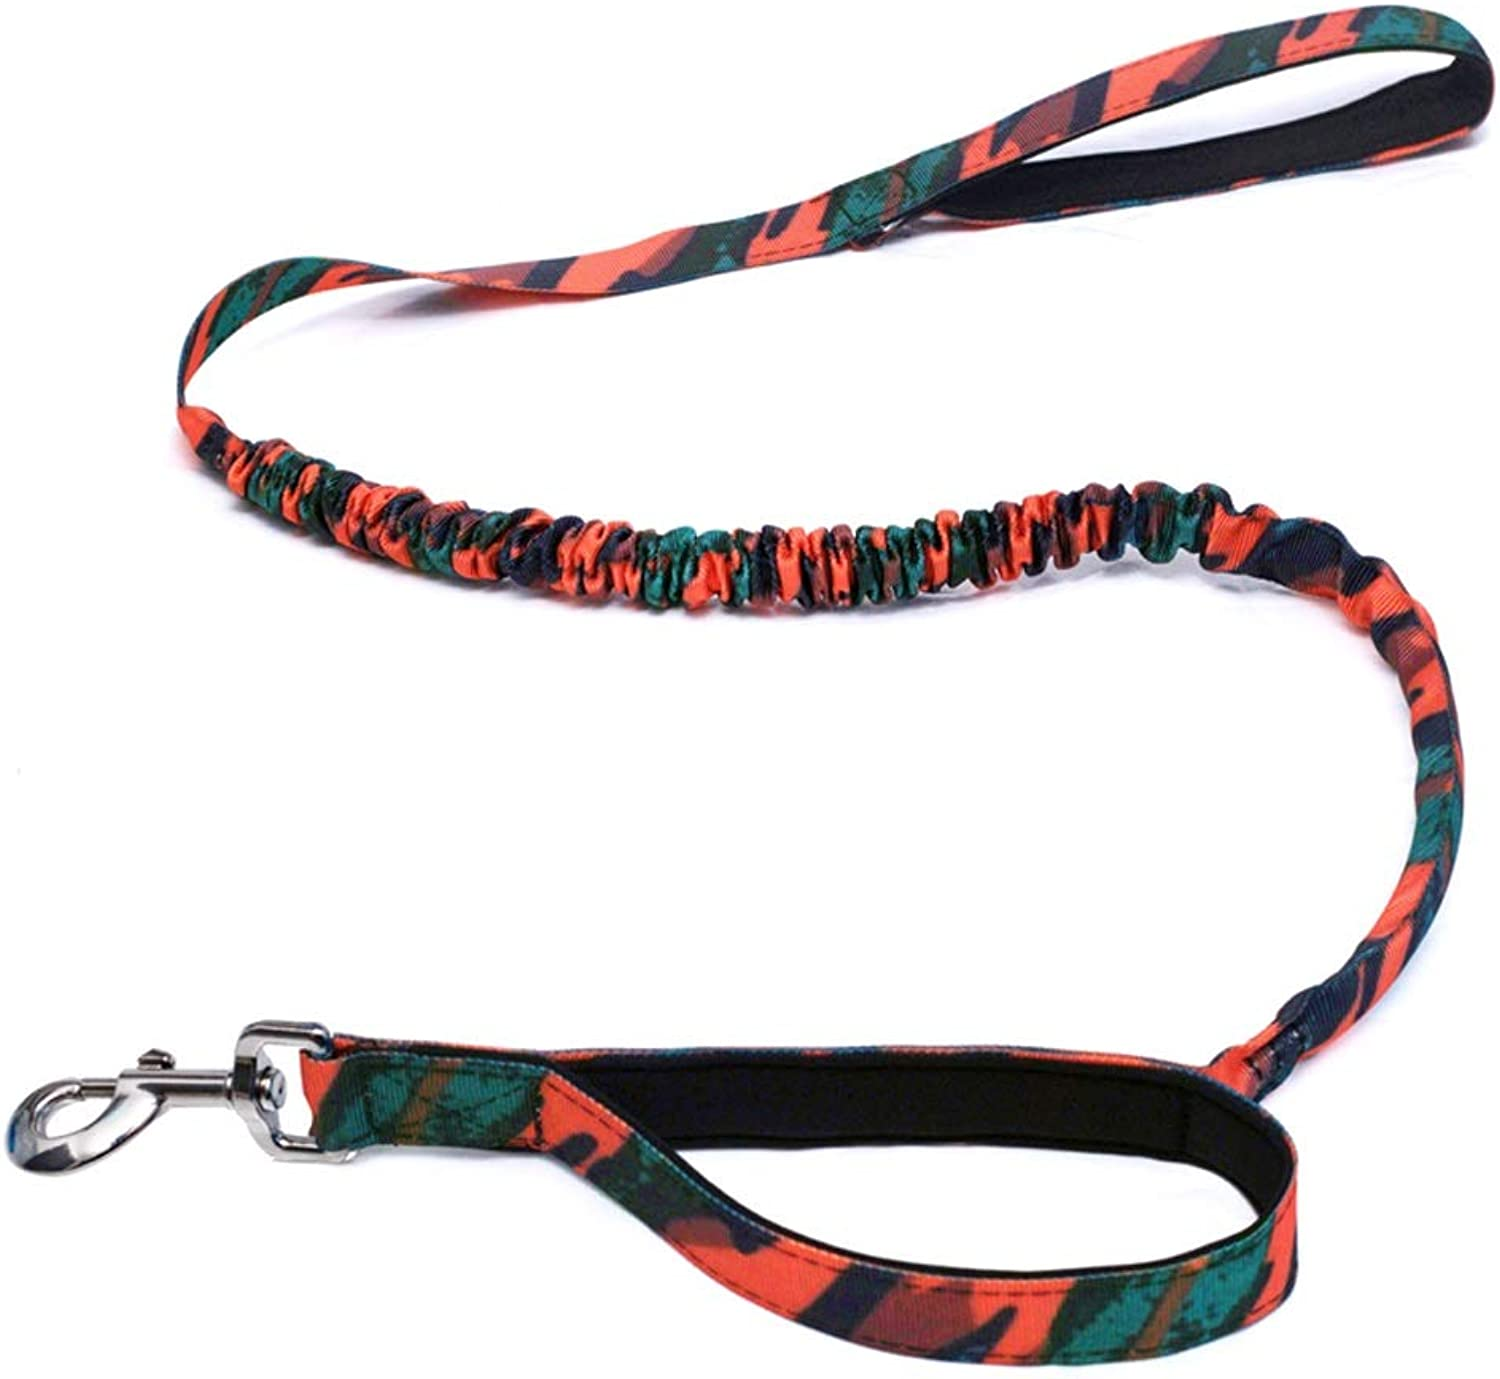 LZRZBH Pet Supplies Dog Leashes ExplosionProof Rushing Bold Dualuse Elastic Rope Large Dog Leash Dog Chain, Rope Length  120cm (color   orange)